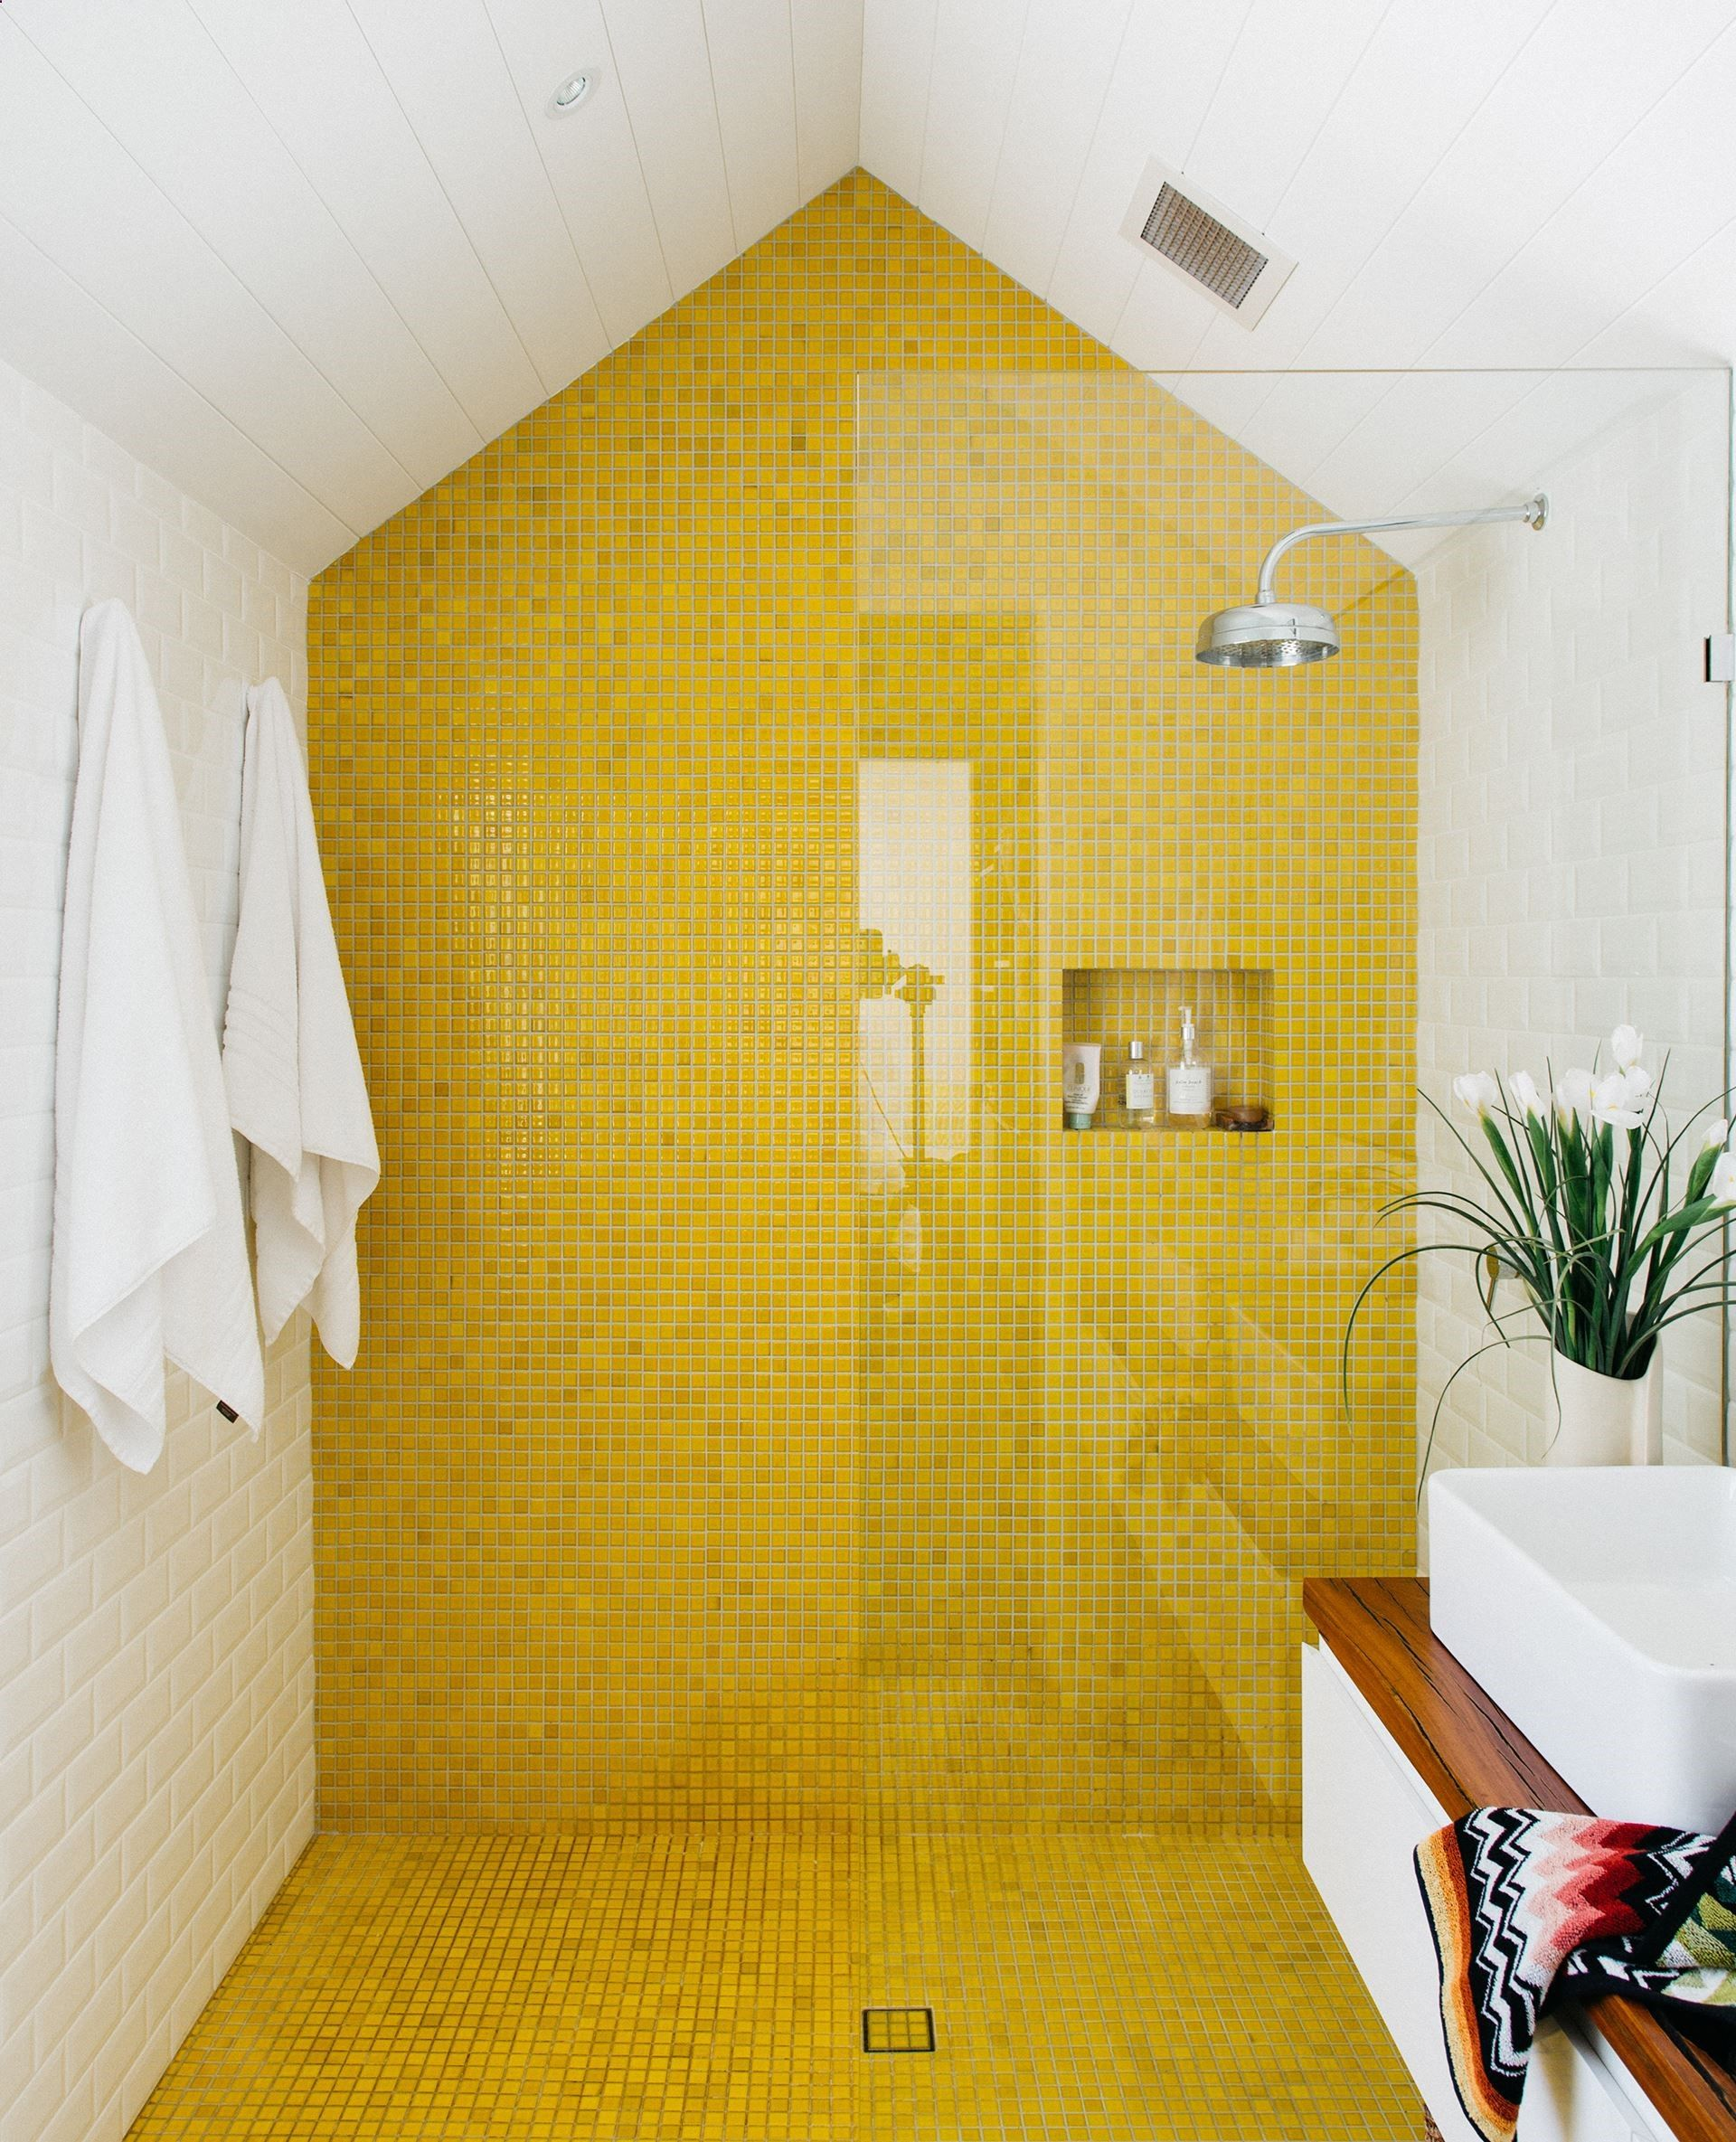 Bad designtrends colourful ensuite from renovation of a heritage sandstone cottage in